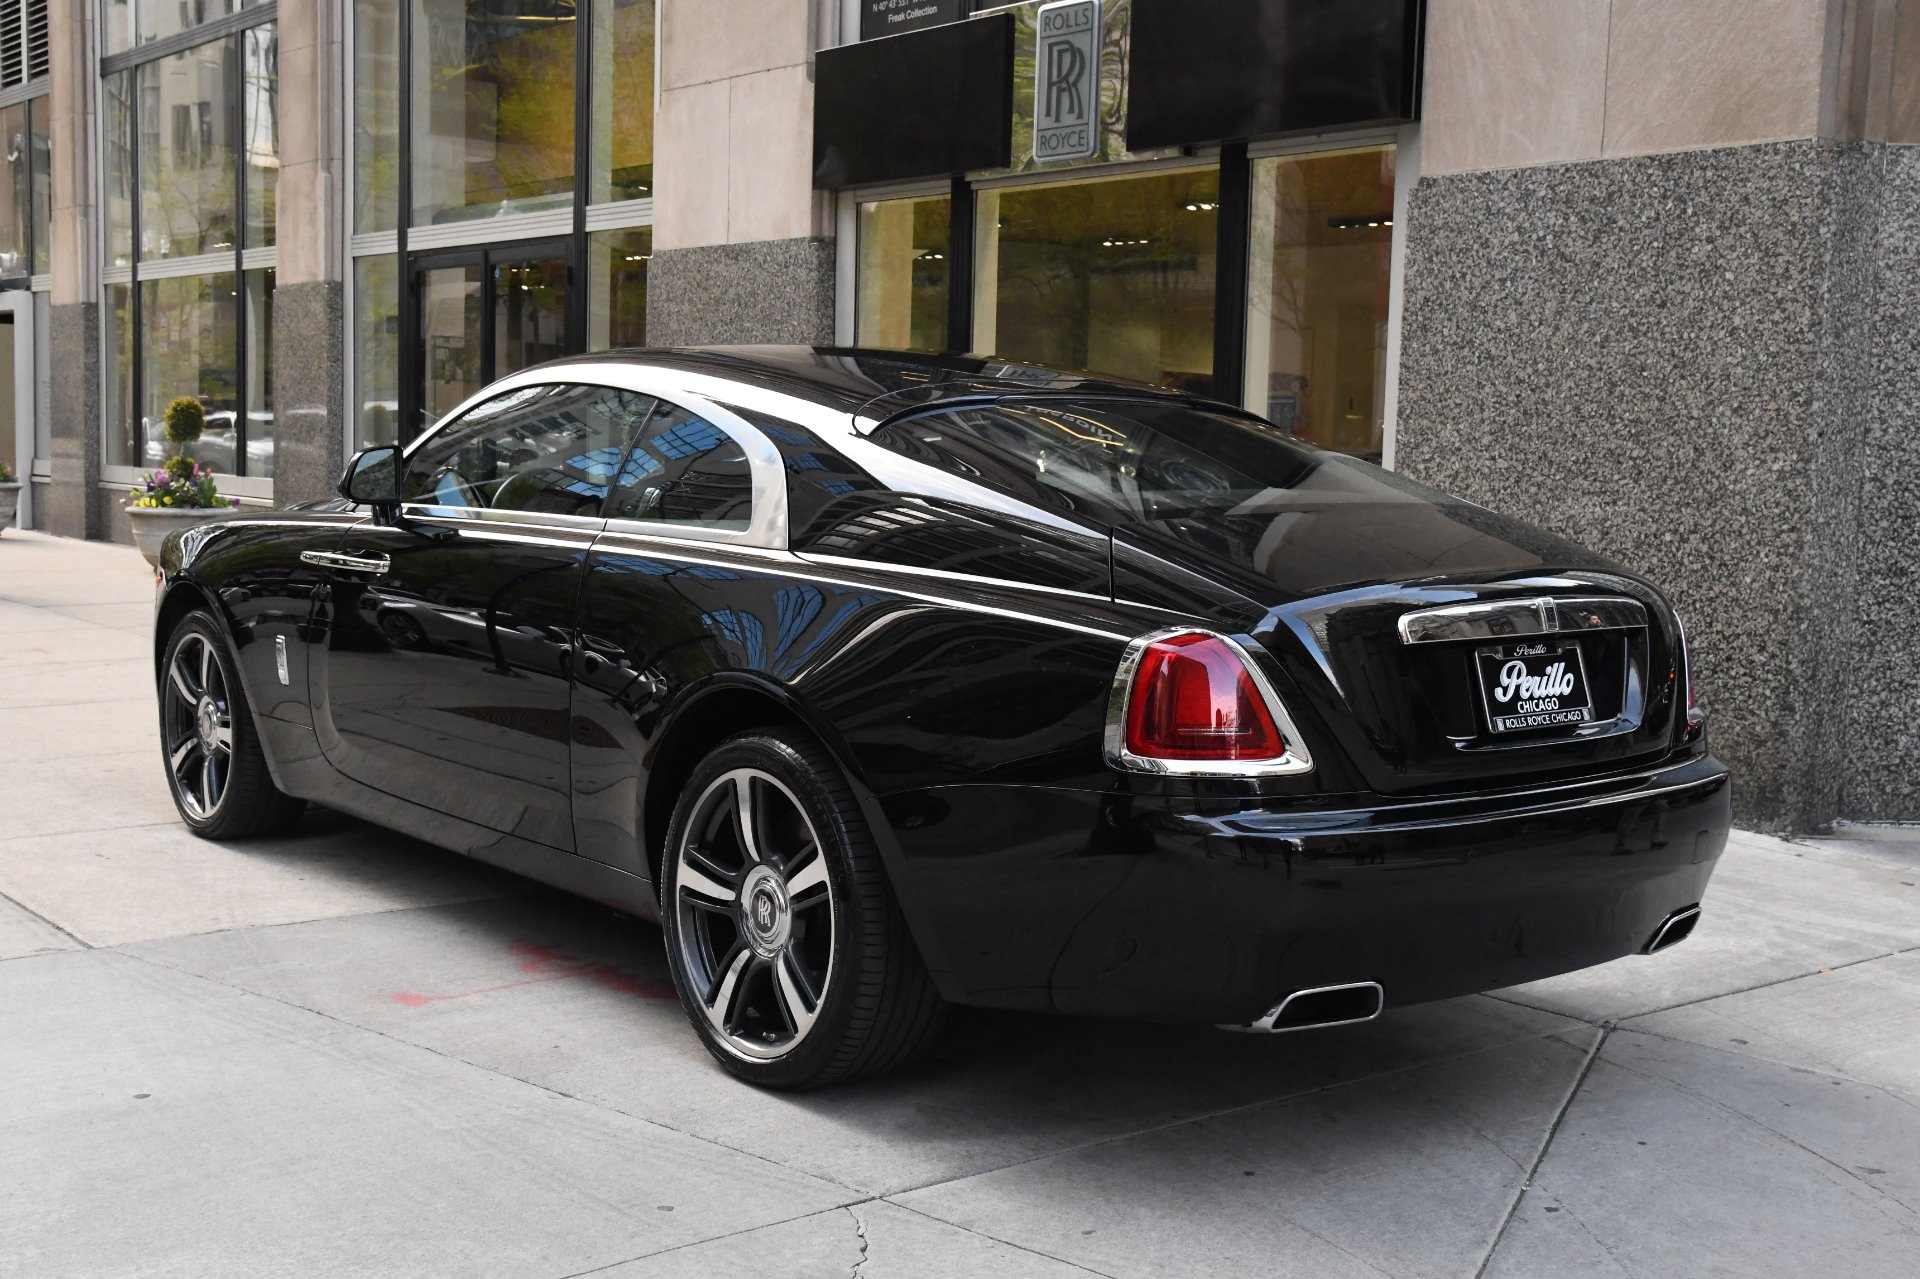 2014 rolls royce wraith for sale 0 1471306. Black Bedroom Furniture Sets. Home Design Ideas